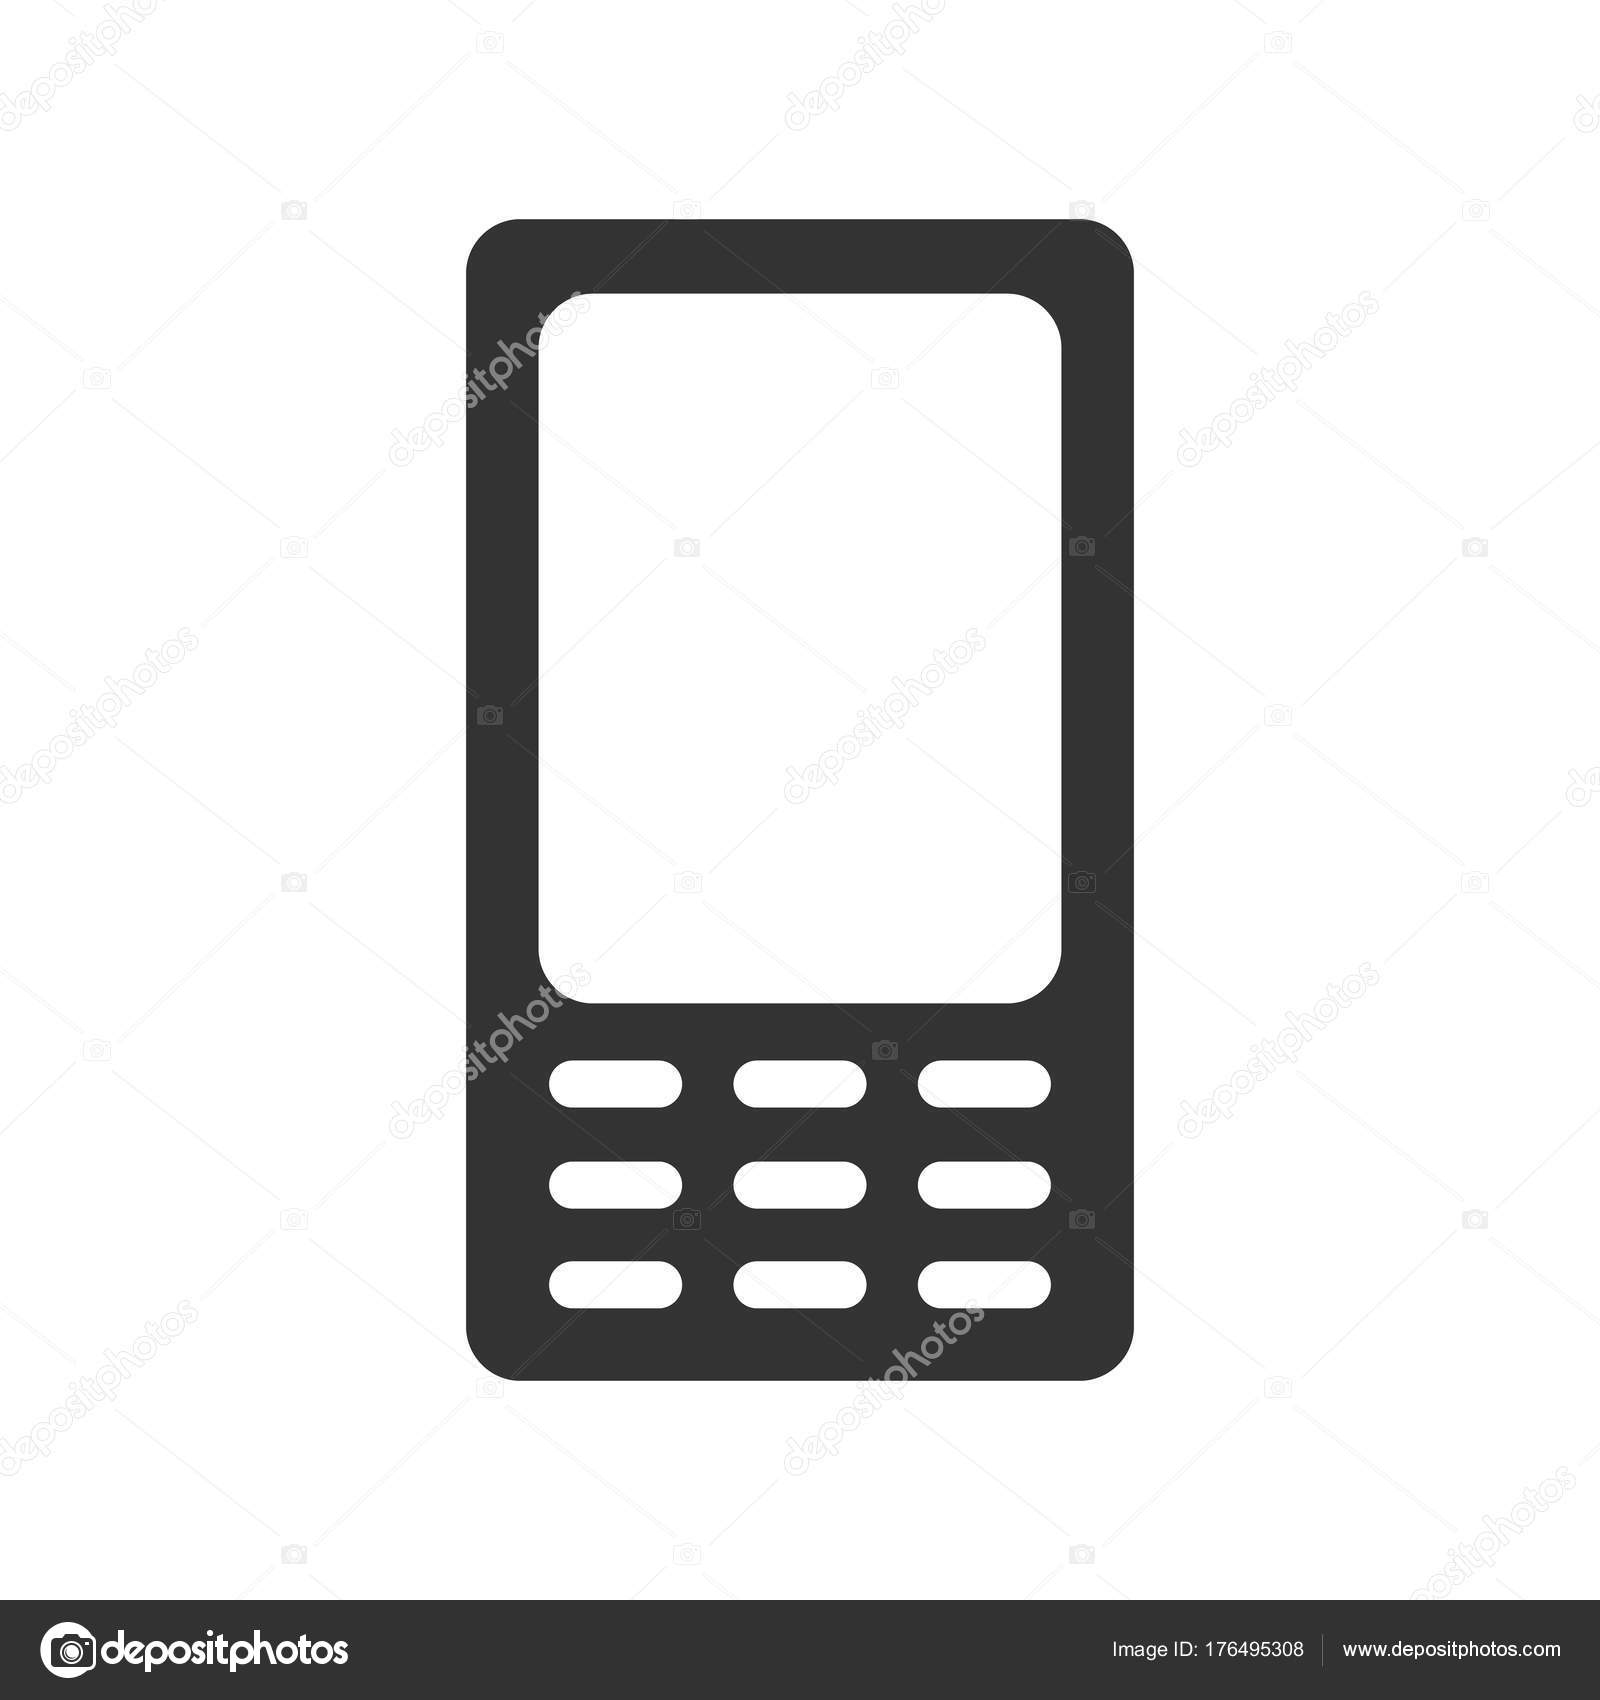 Smartphone icon in iphone style cellphone pictogram in trendy flat smartphone icon in iphone style cellphone pictogram in trendy flat style isolated on white background telephone symbol for your web site design logo biocorpaavc Image collections